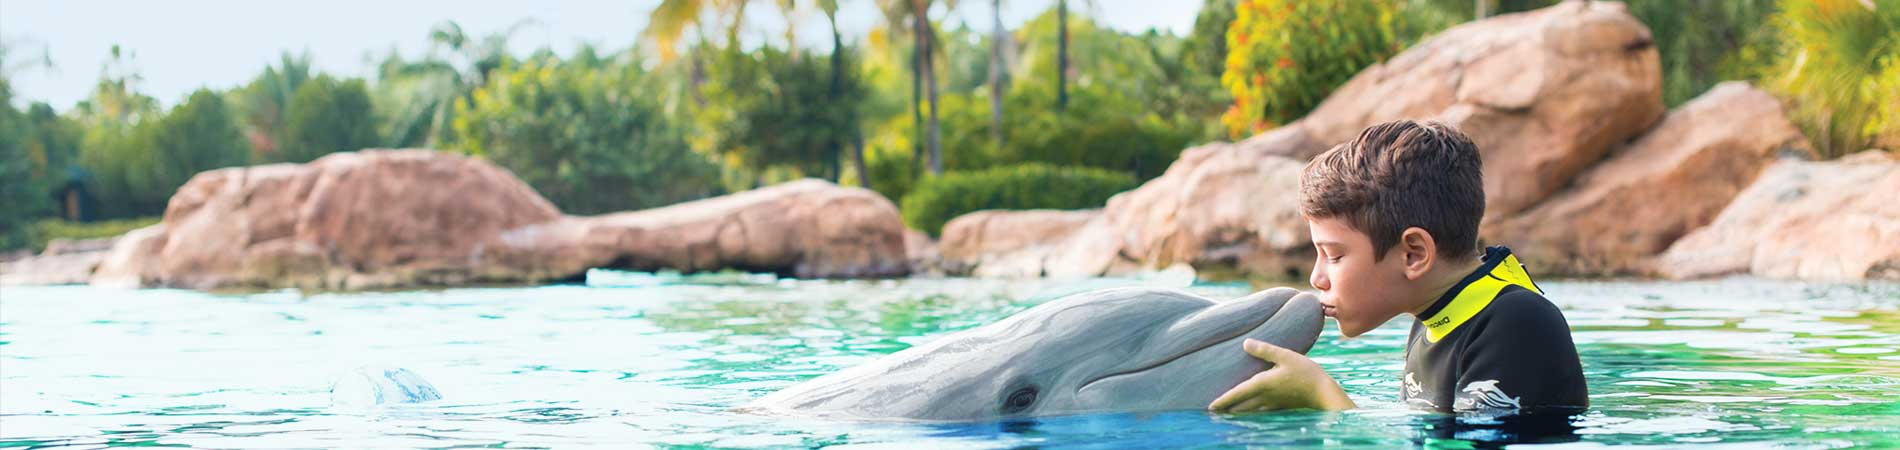 discovery-cove-dolphin-encounter-orlando